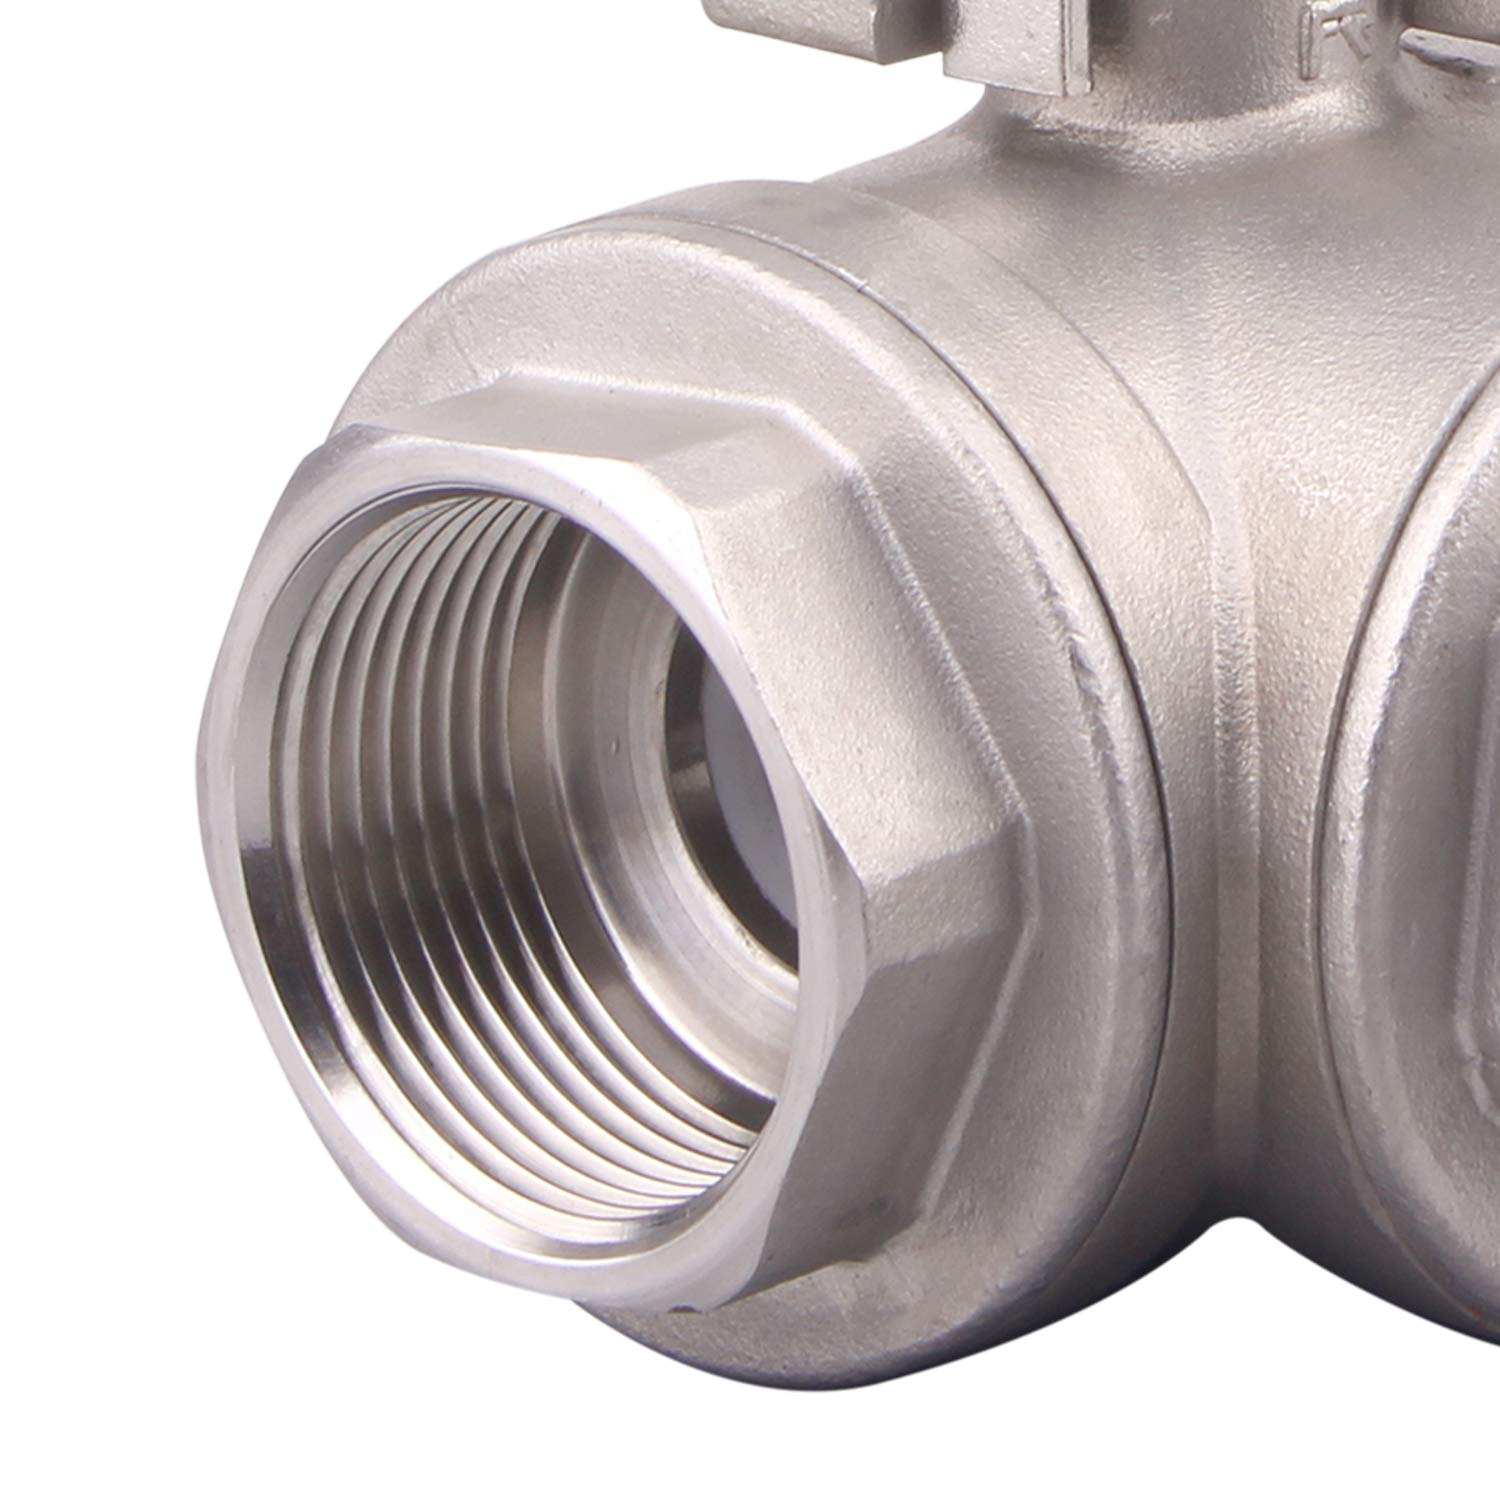 Oil Stainless Steel 304 Female Type for Water and Gas with Vinyl Locking Handle L Mounting Pad 1//2 Inch NPT DERNORD 3-Way Ball Valve